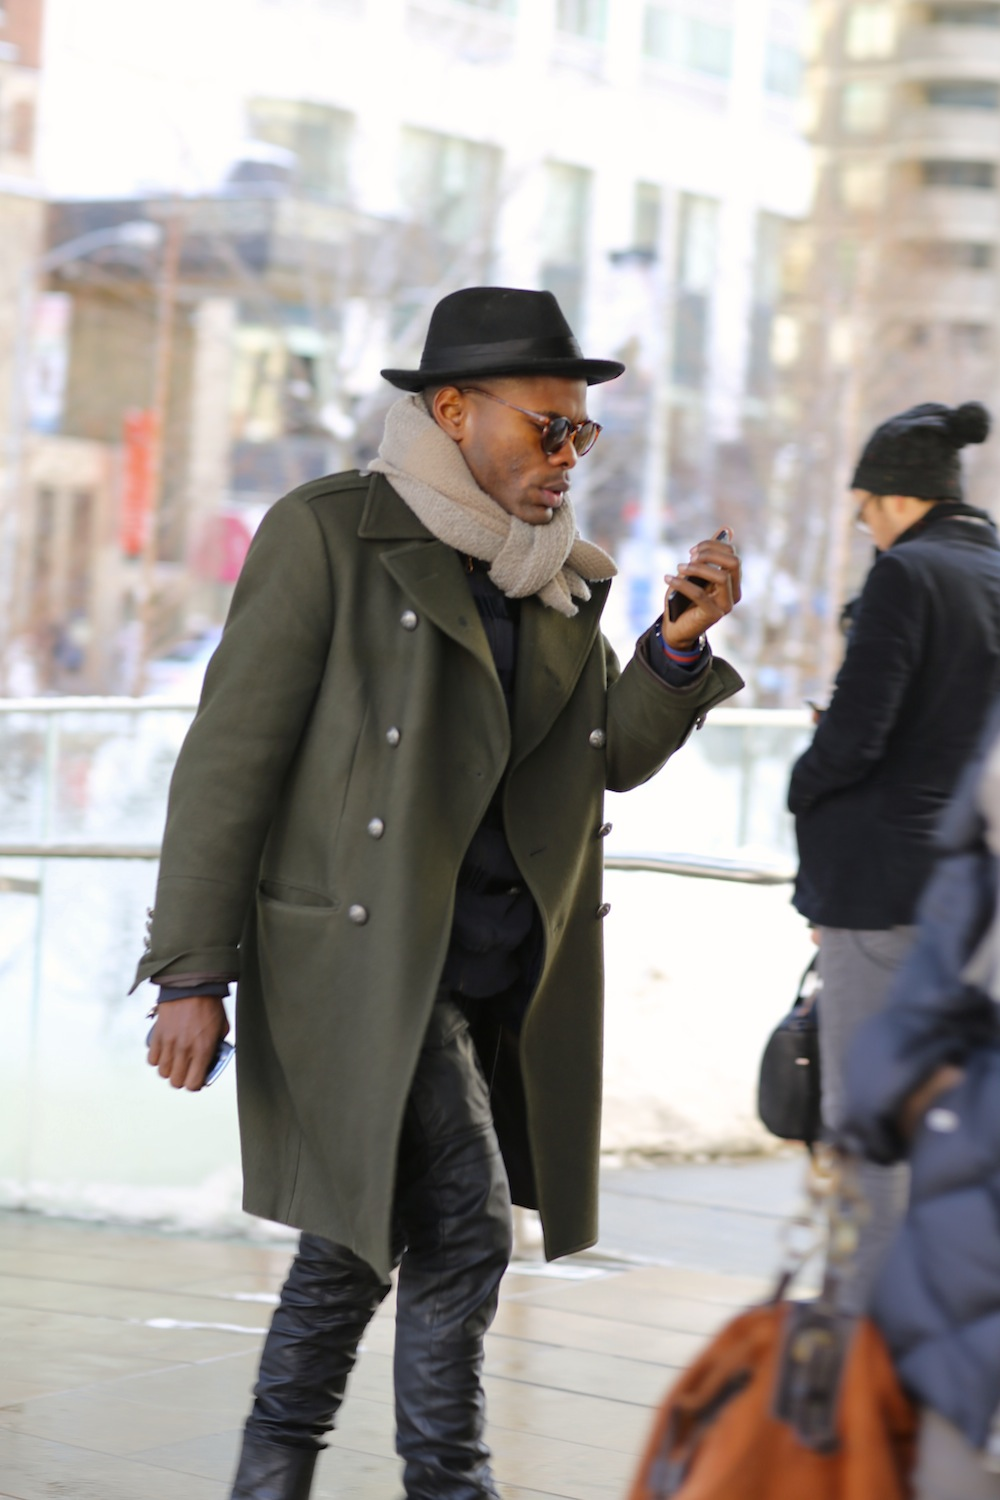 Street Style Fashion: Outerwear & Shoes